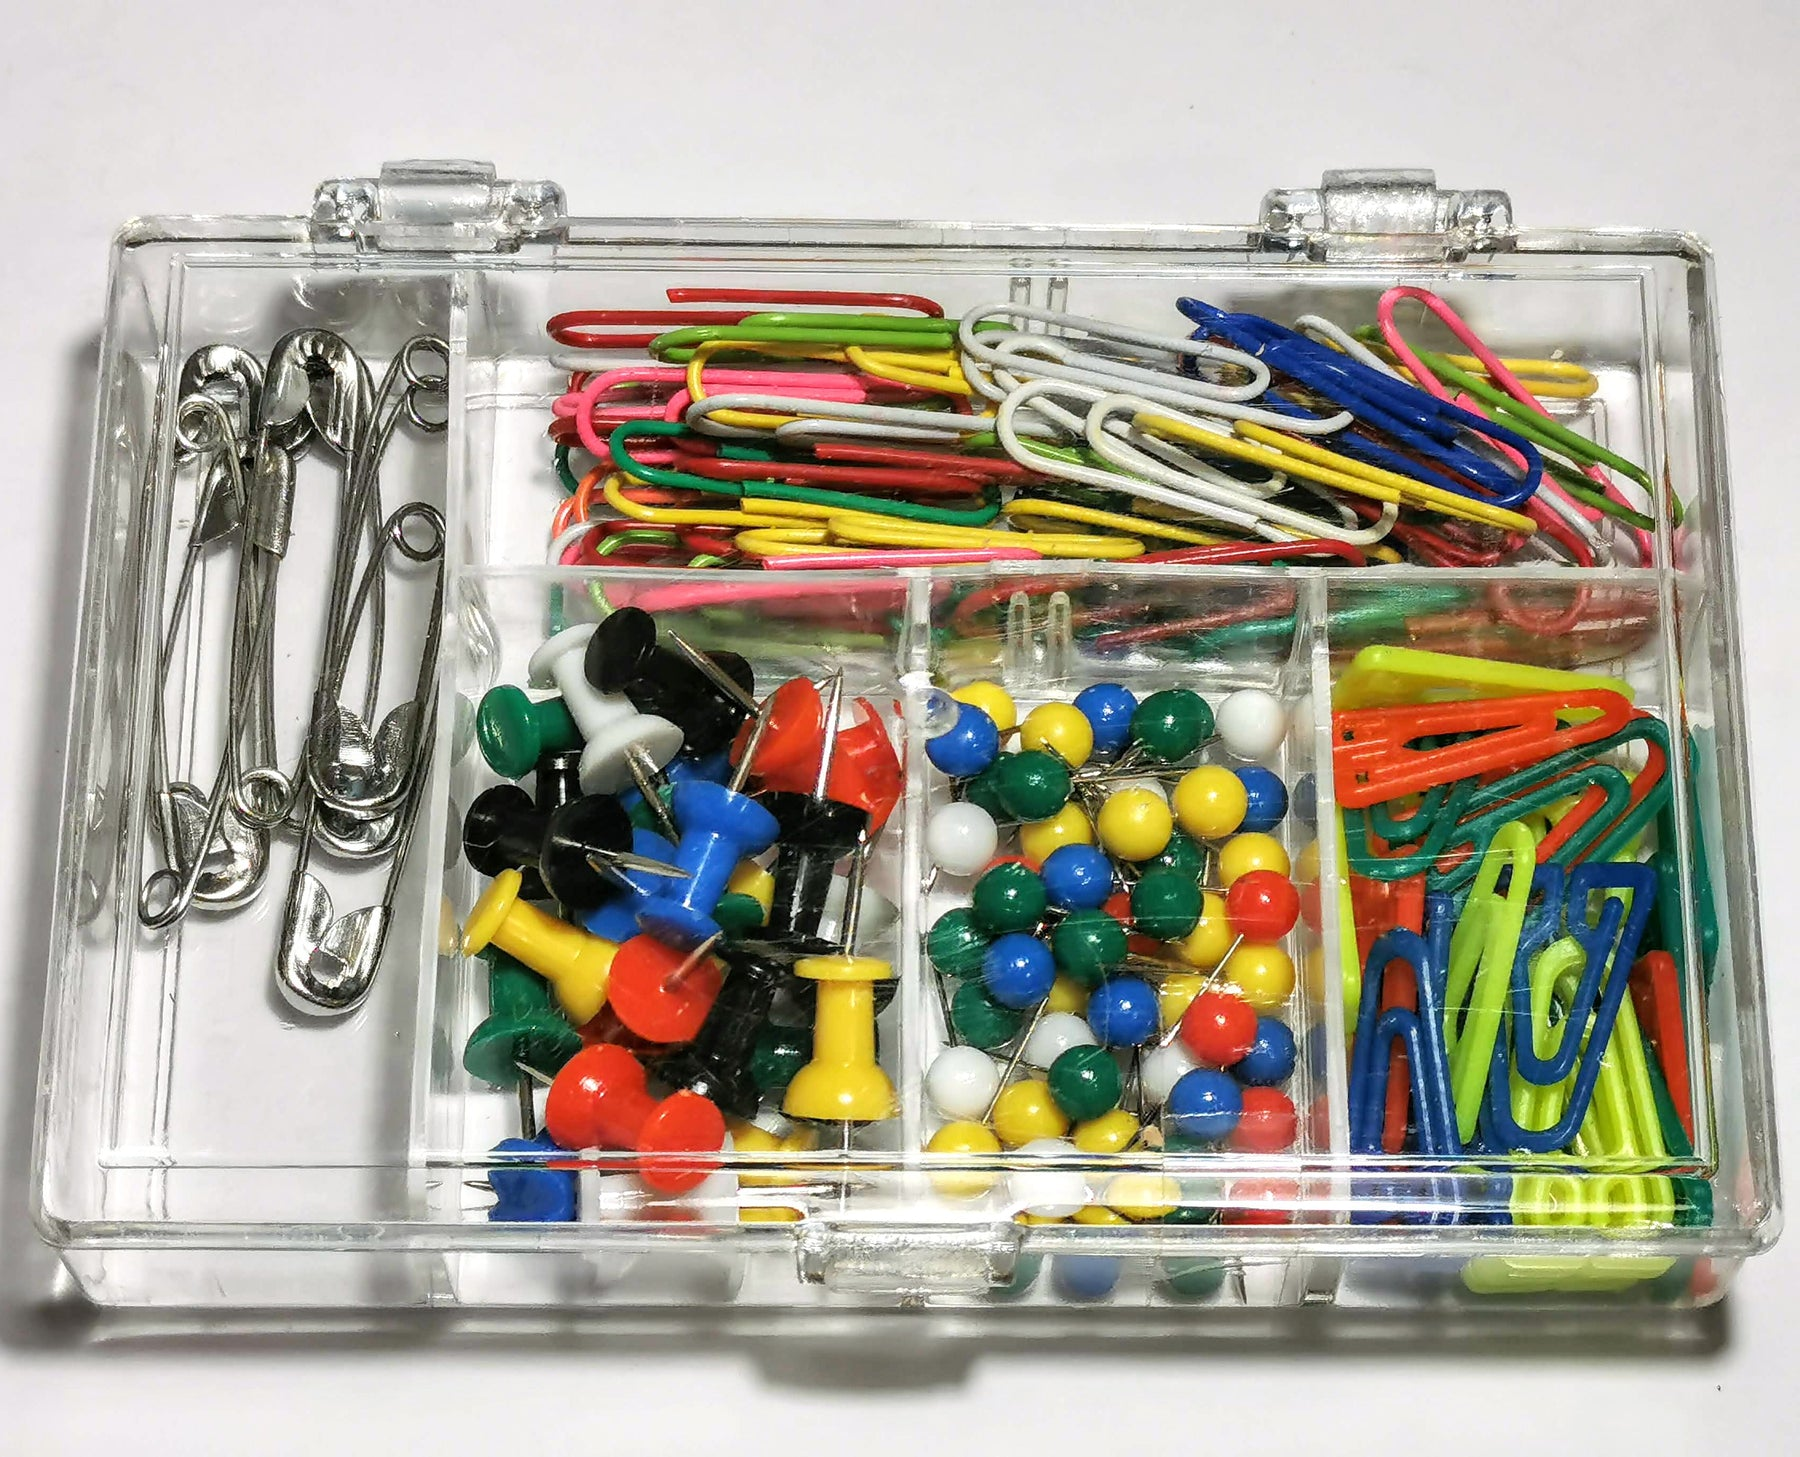 Set of paper clips, safety pins, map pins, push pins